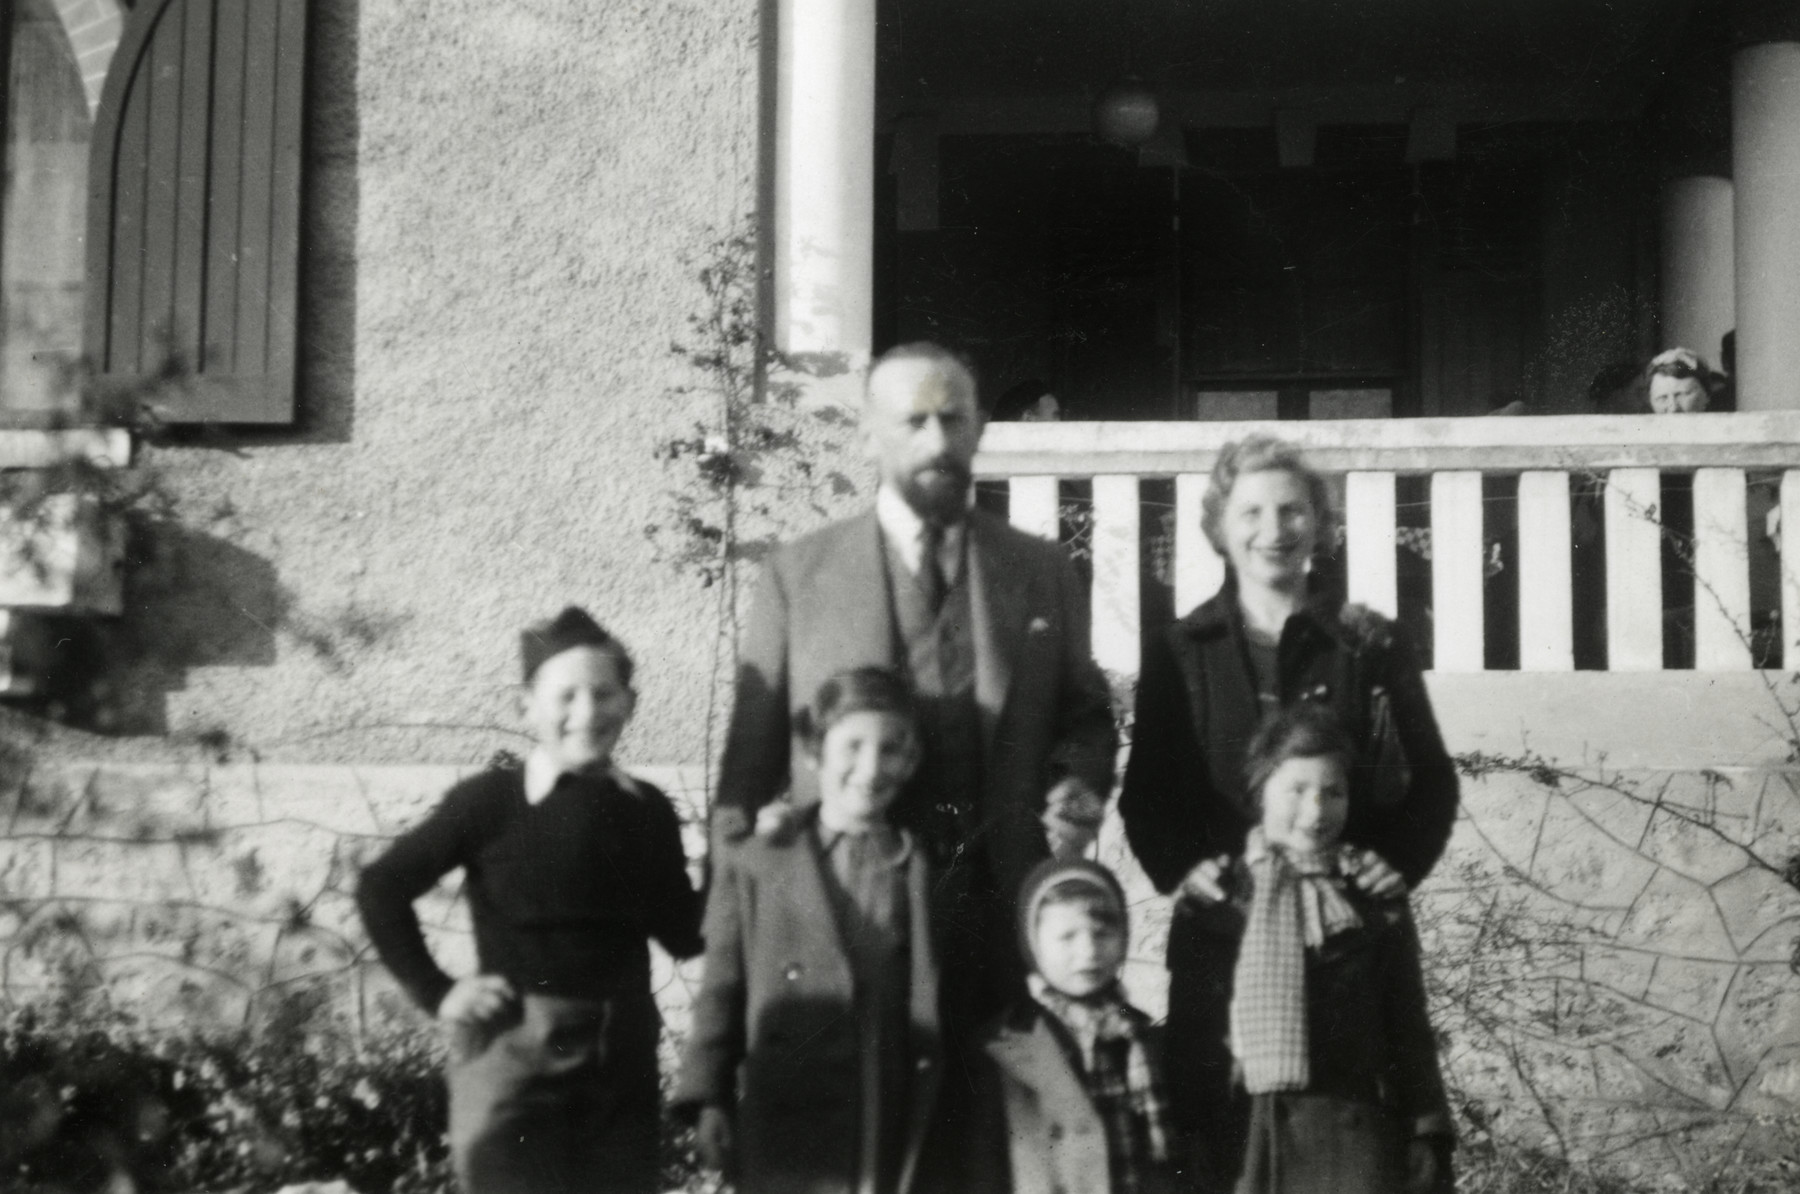 Gustav Schreiber (the uncle of the donor) poses with his wife and children.  Pictured in front are Rene, Lucie, Nicole and Henri.  Behind them are Gustav and Hella Schreiber.